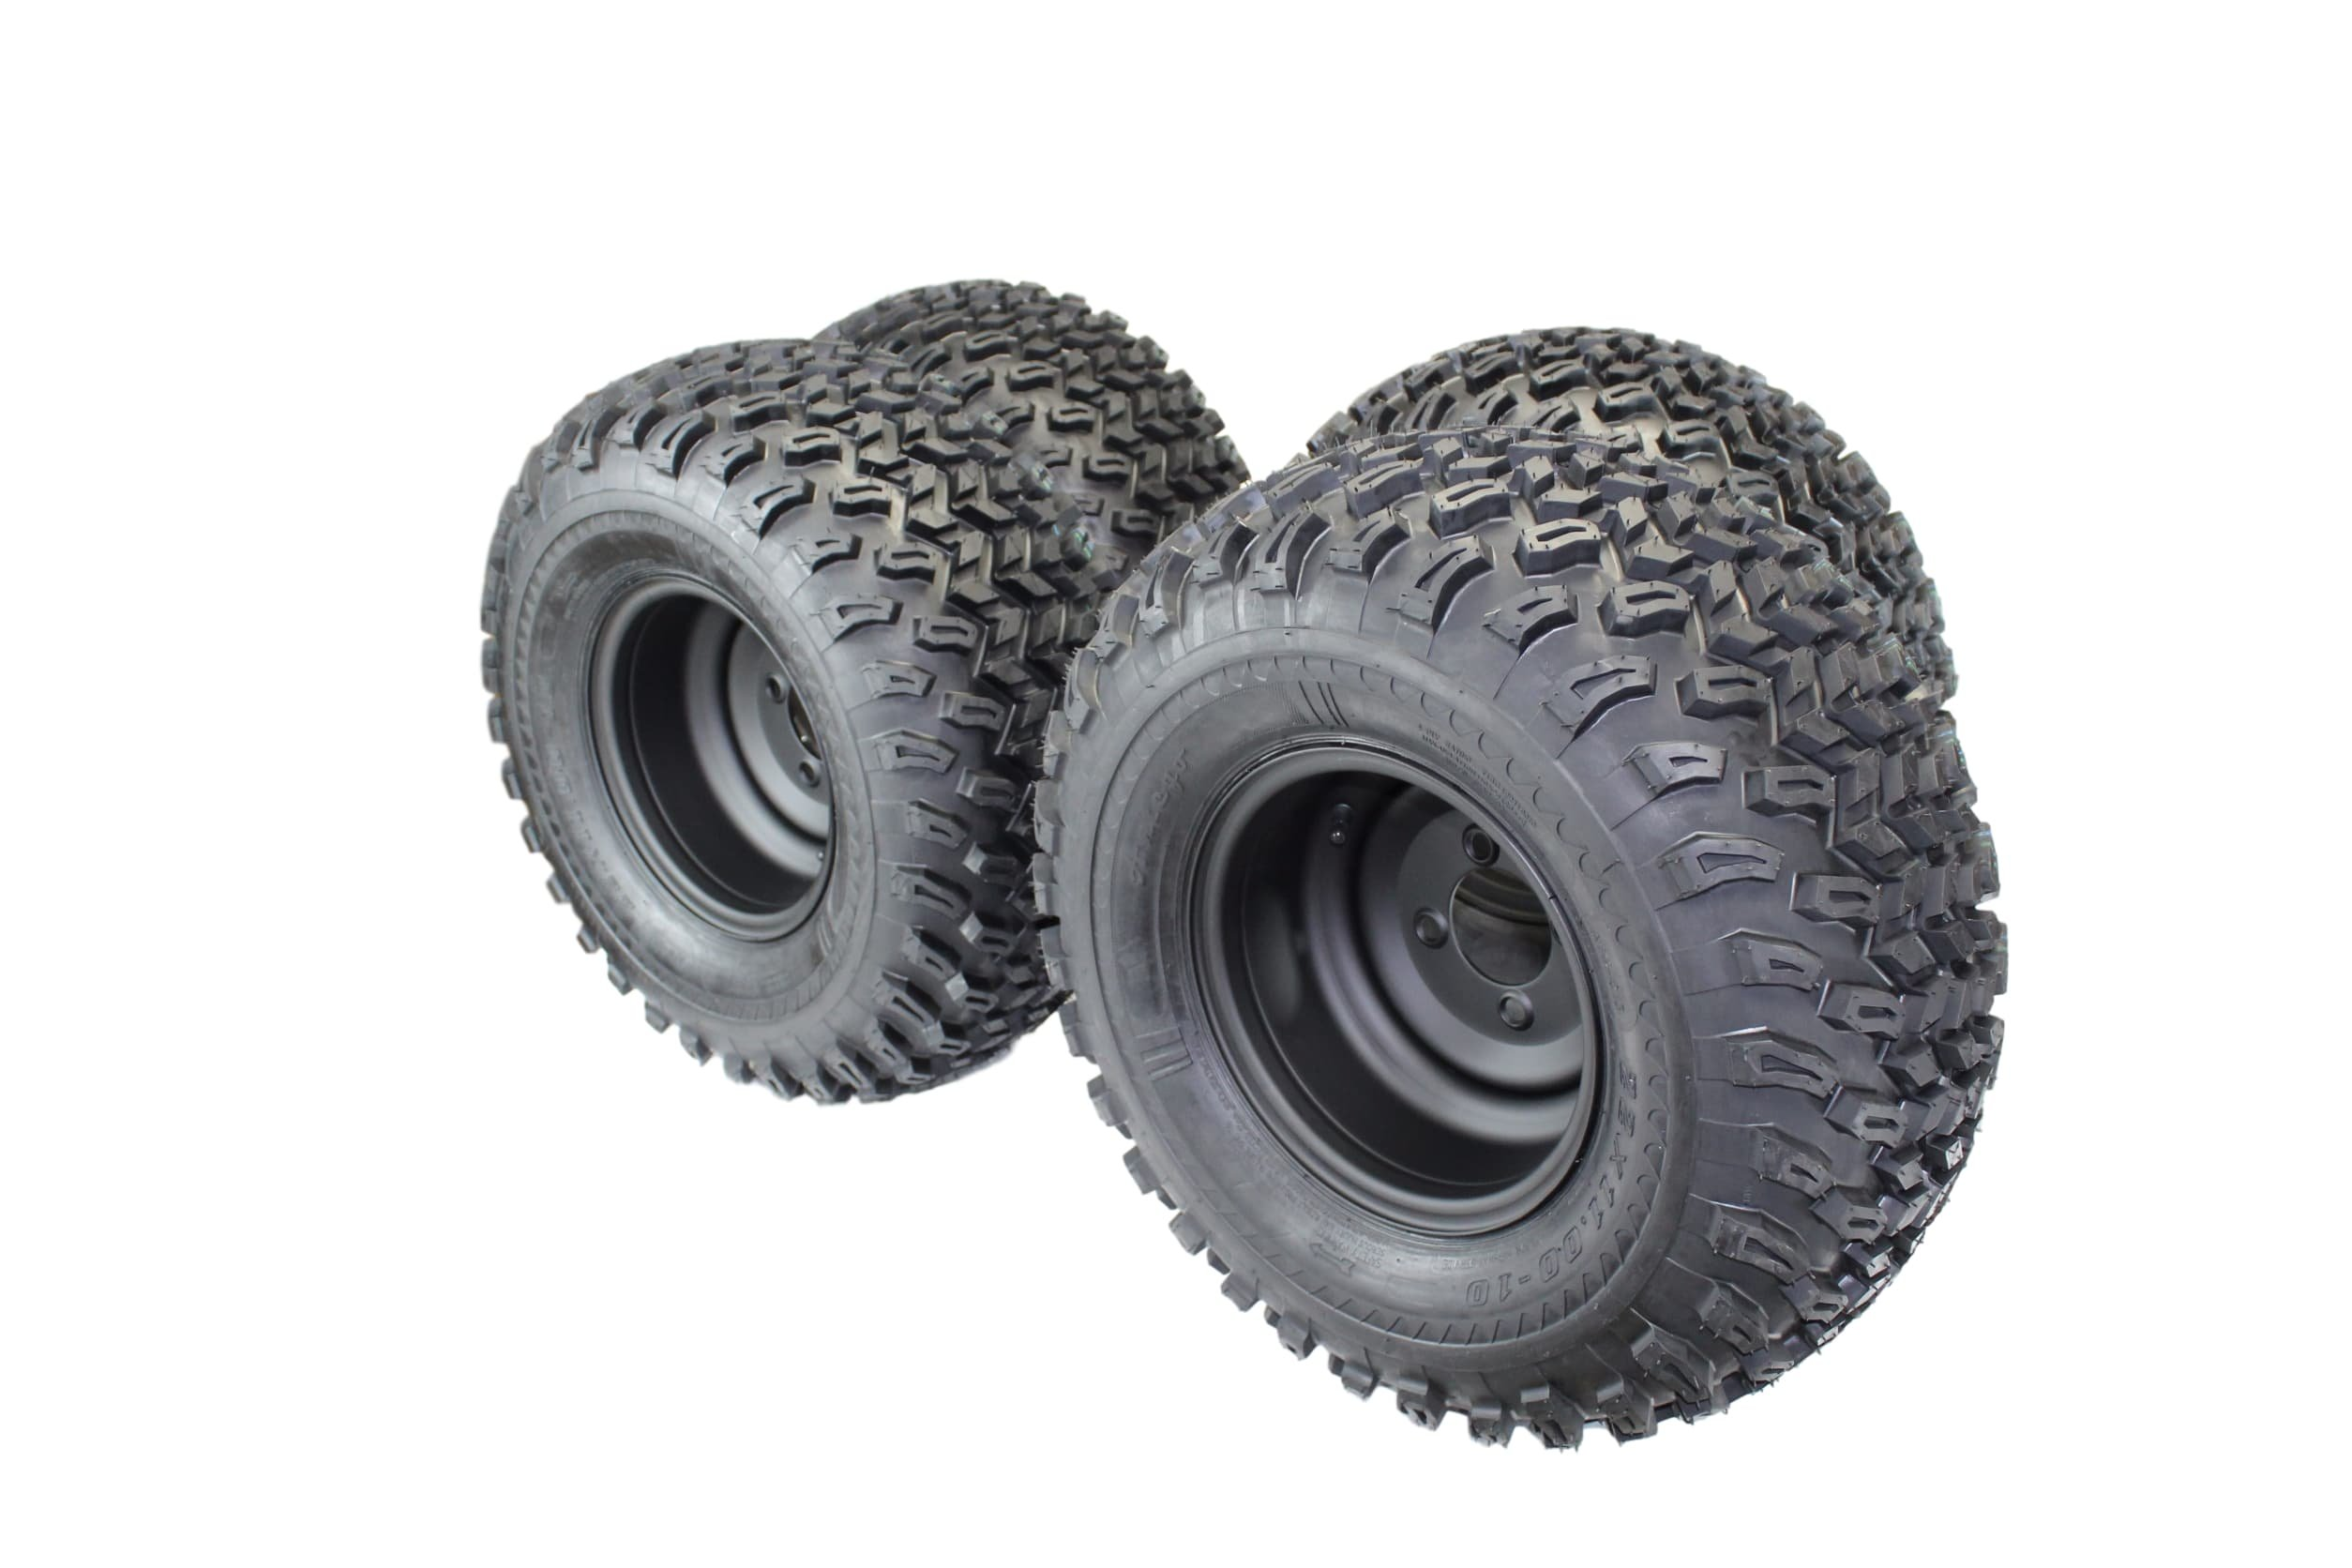 22x11.00-10 with 10x7 Matte Black Wheels for Golf Cart (Set of 4)